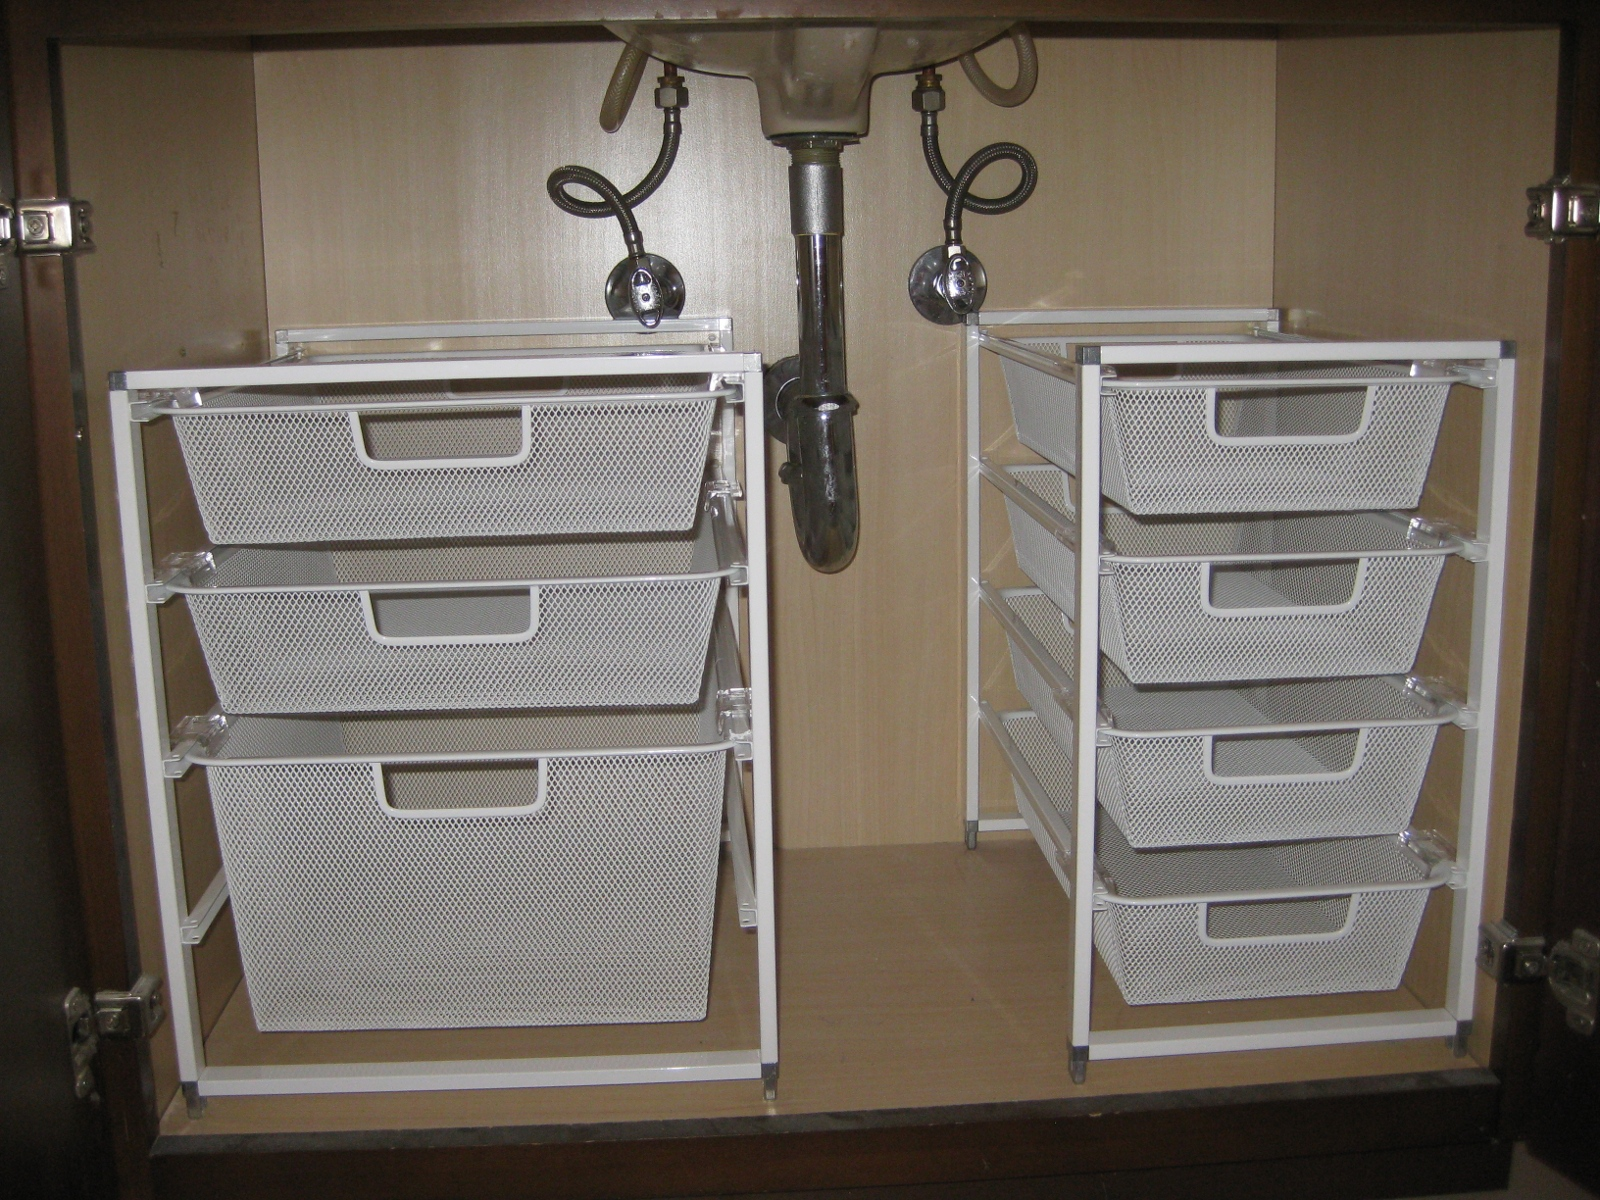 Under the sink organization pleia2 39 s blog - Bathroom vanity under sink organizer ...